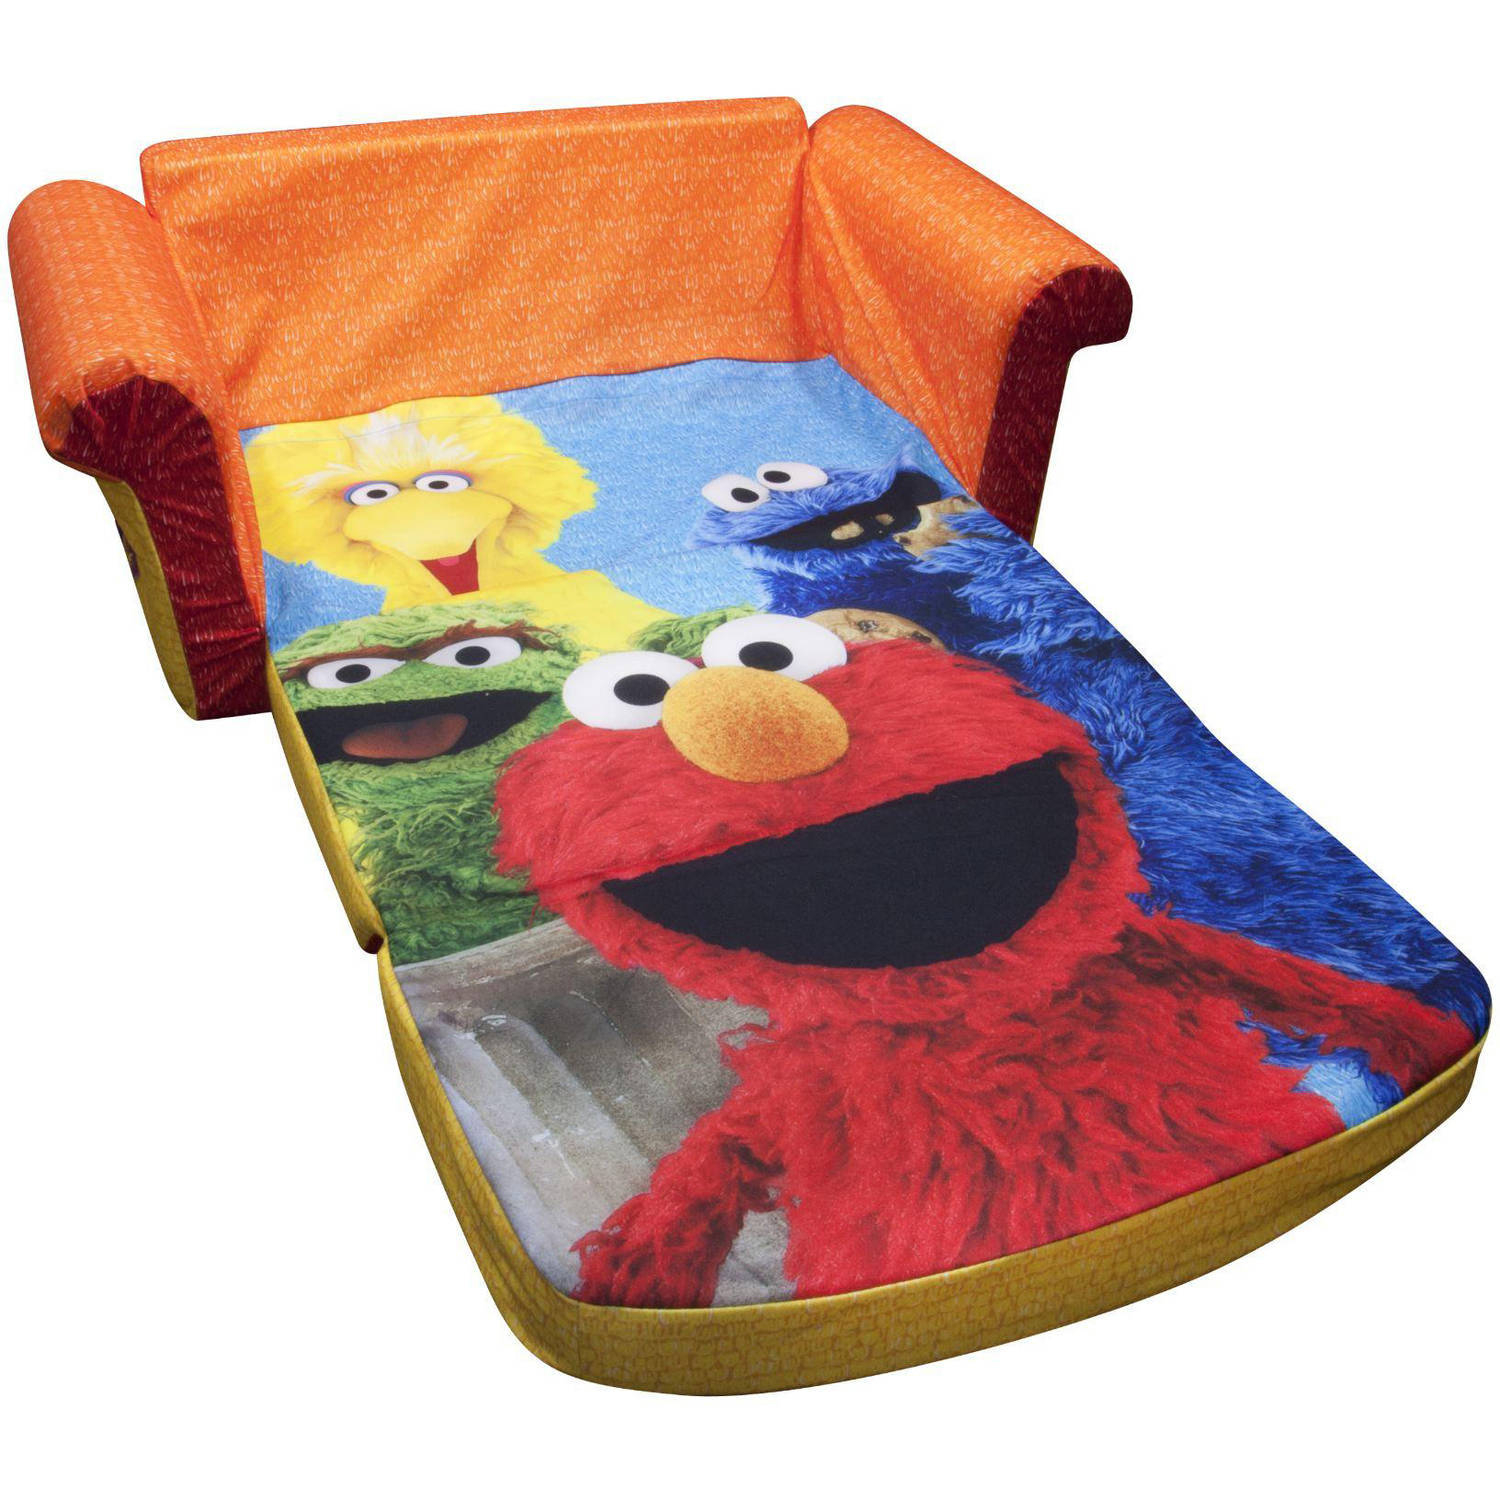 Marshmallow 2-in-1 Flip Open Sofa, Sesame Street's Elmo